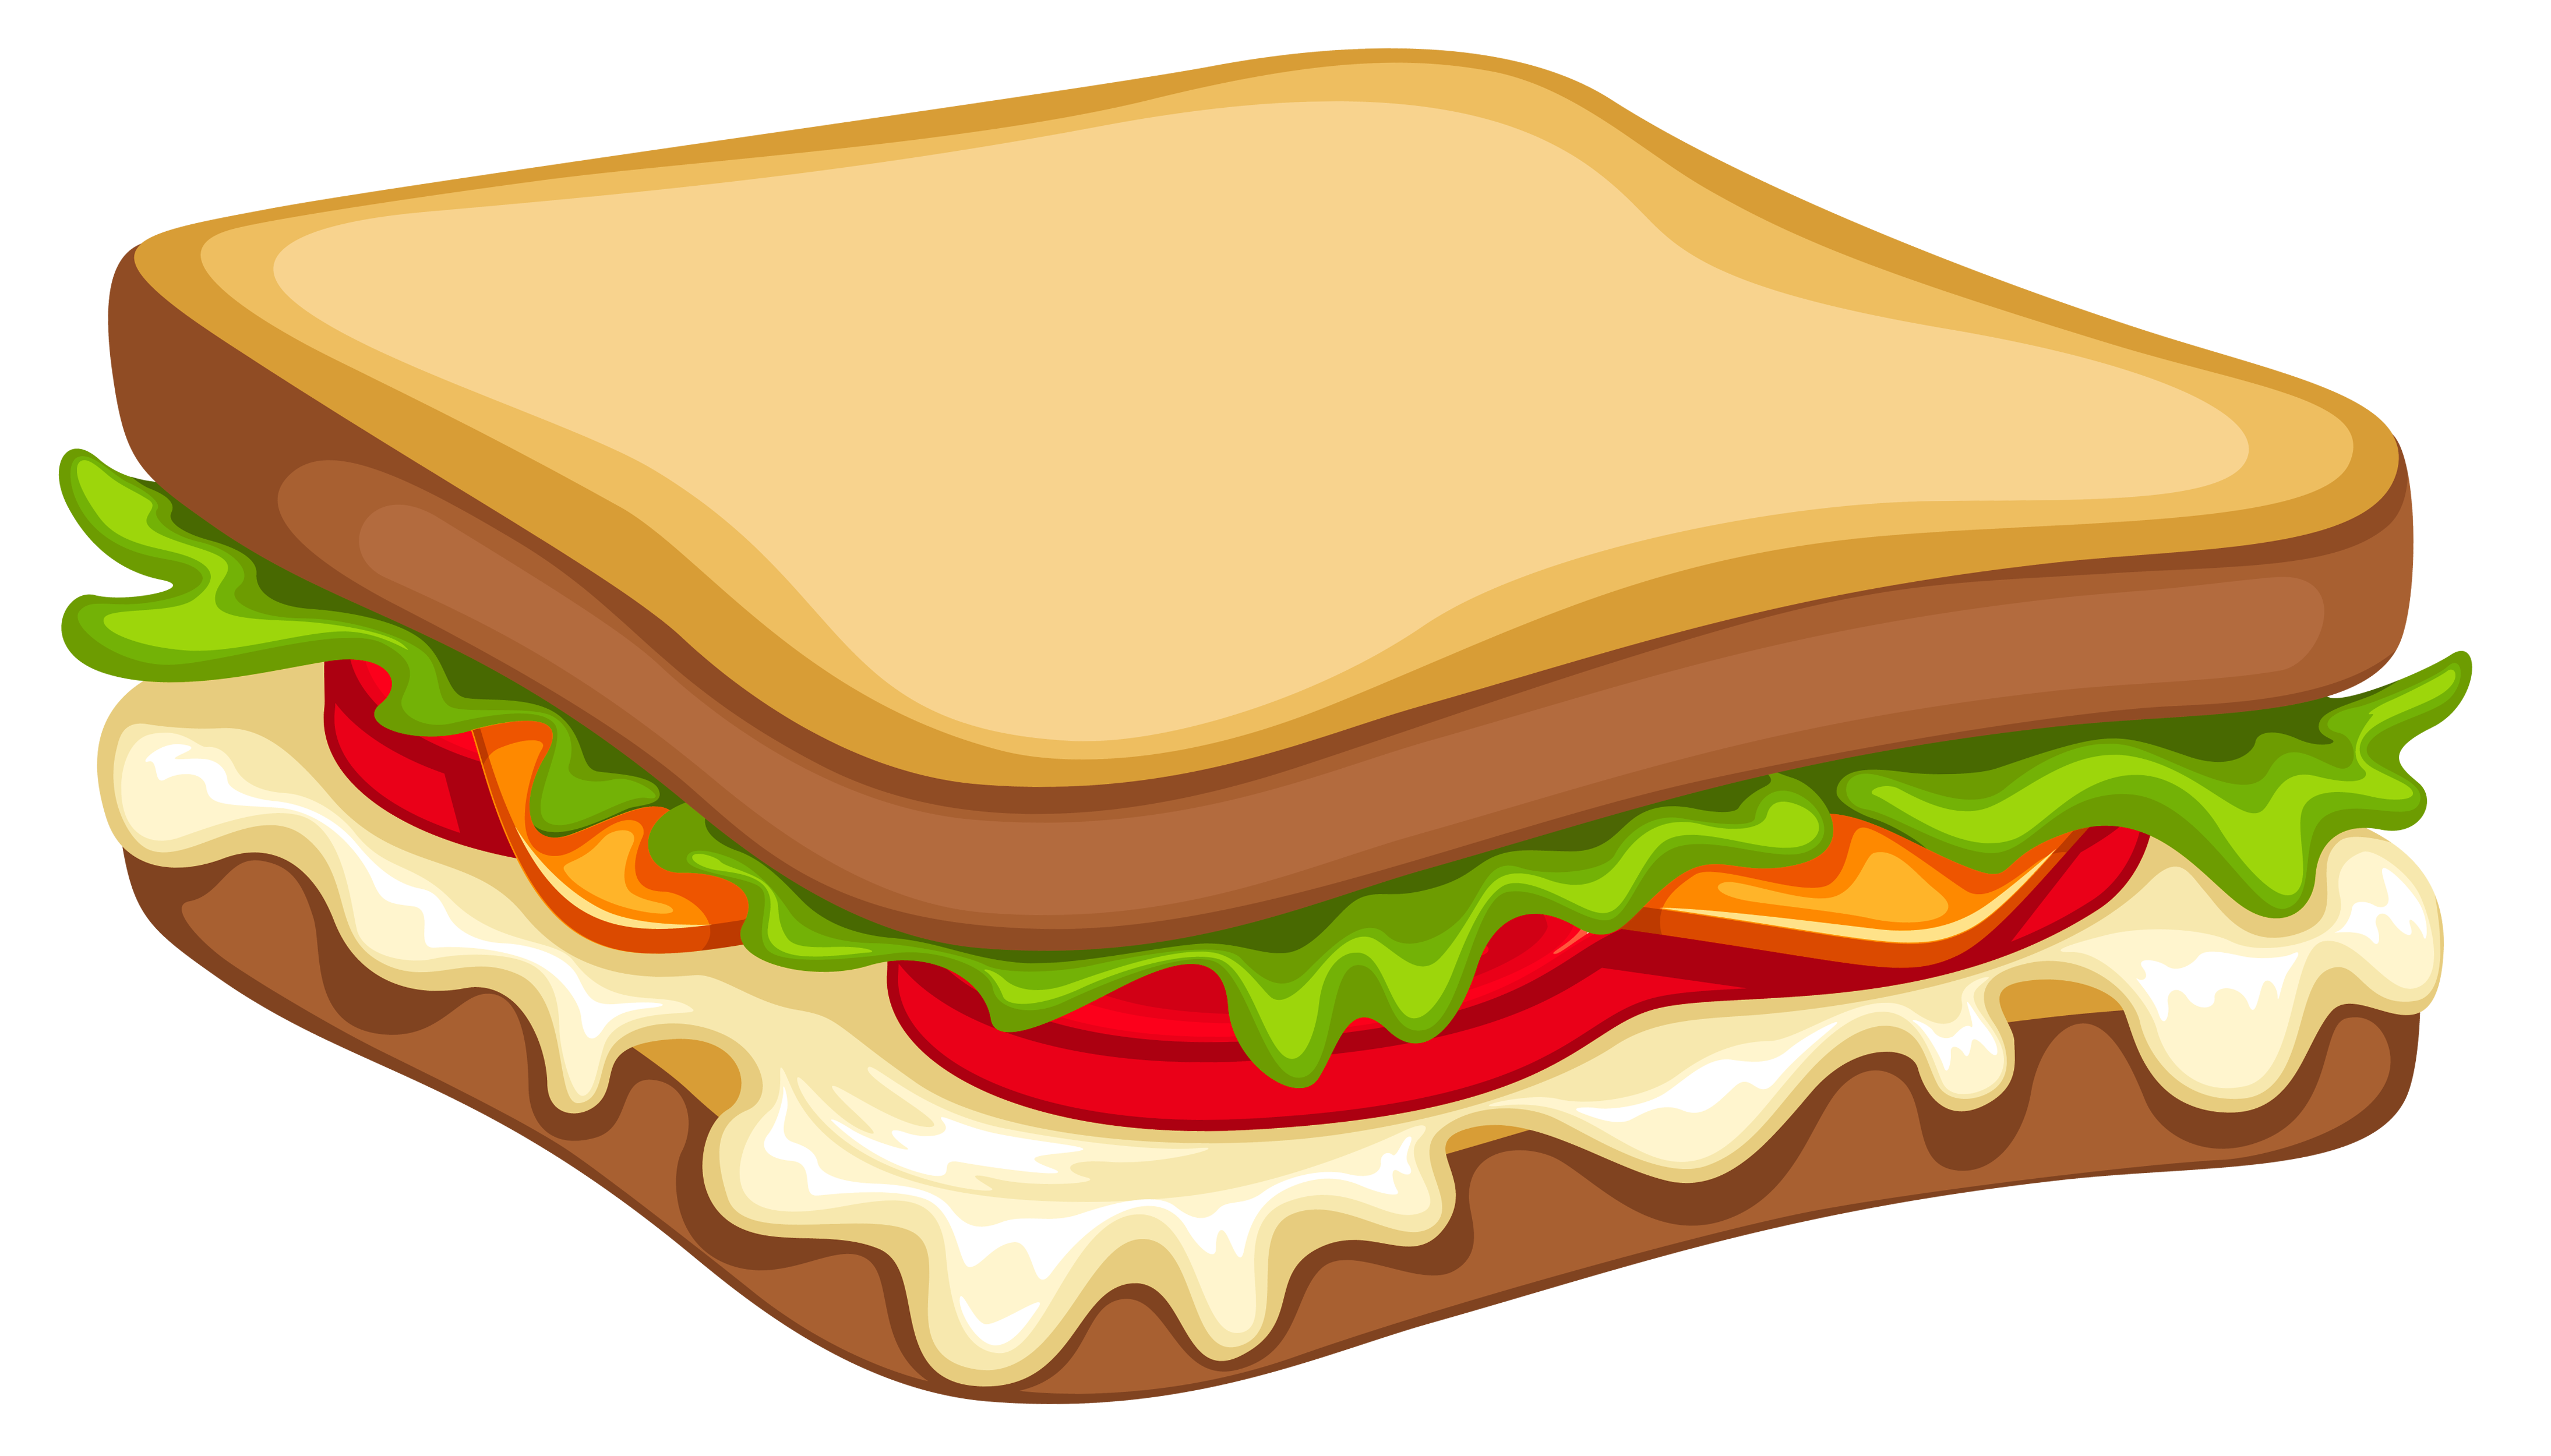 sandwich png clipart vector image gallery yopriceville high quality images and transparent png free clipart food png image sandwich food clips sandwich png clipart vector image